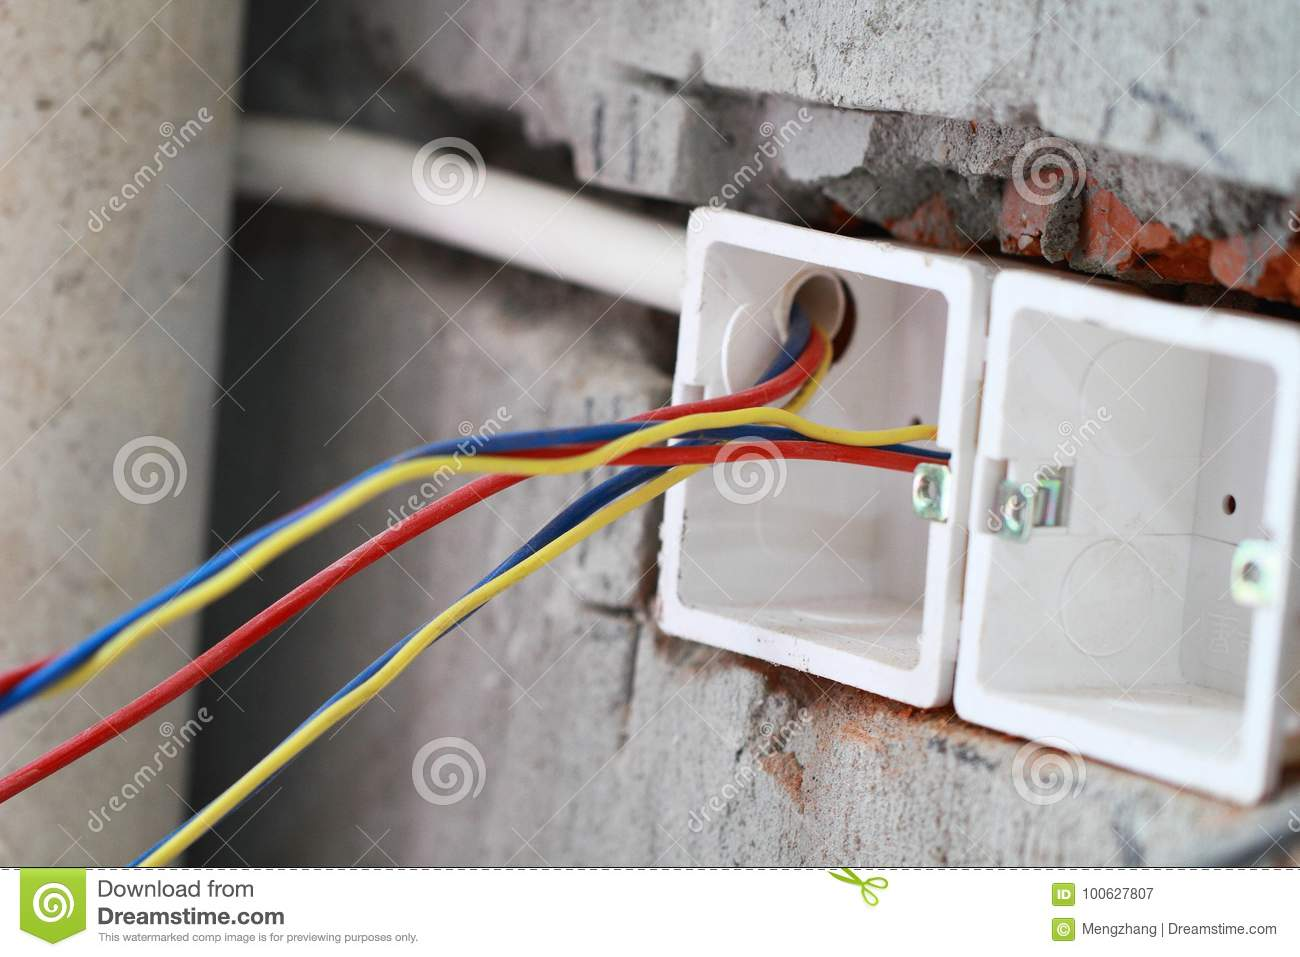 Electrical renovation work stock image. Image of brick - 100627807